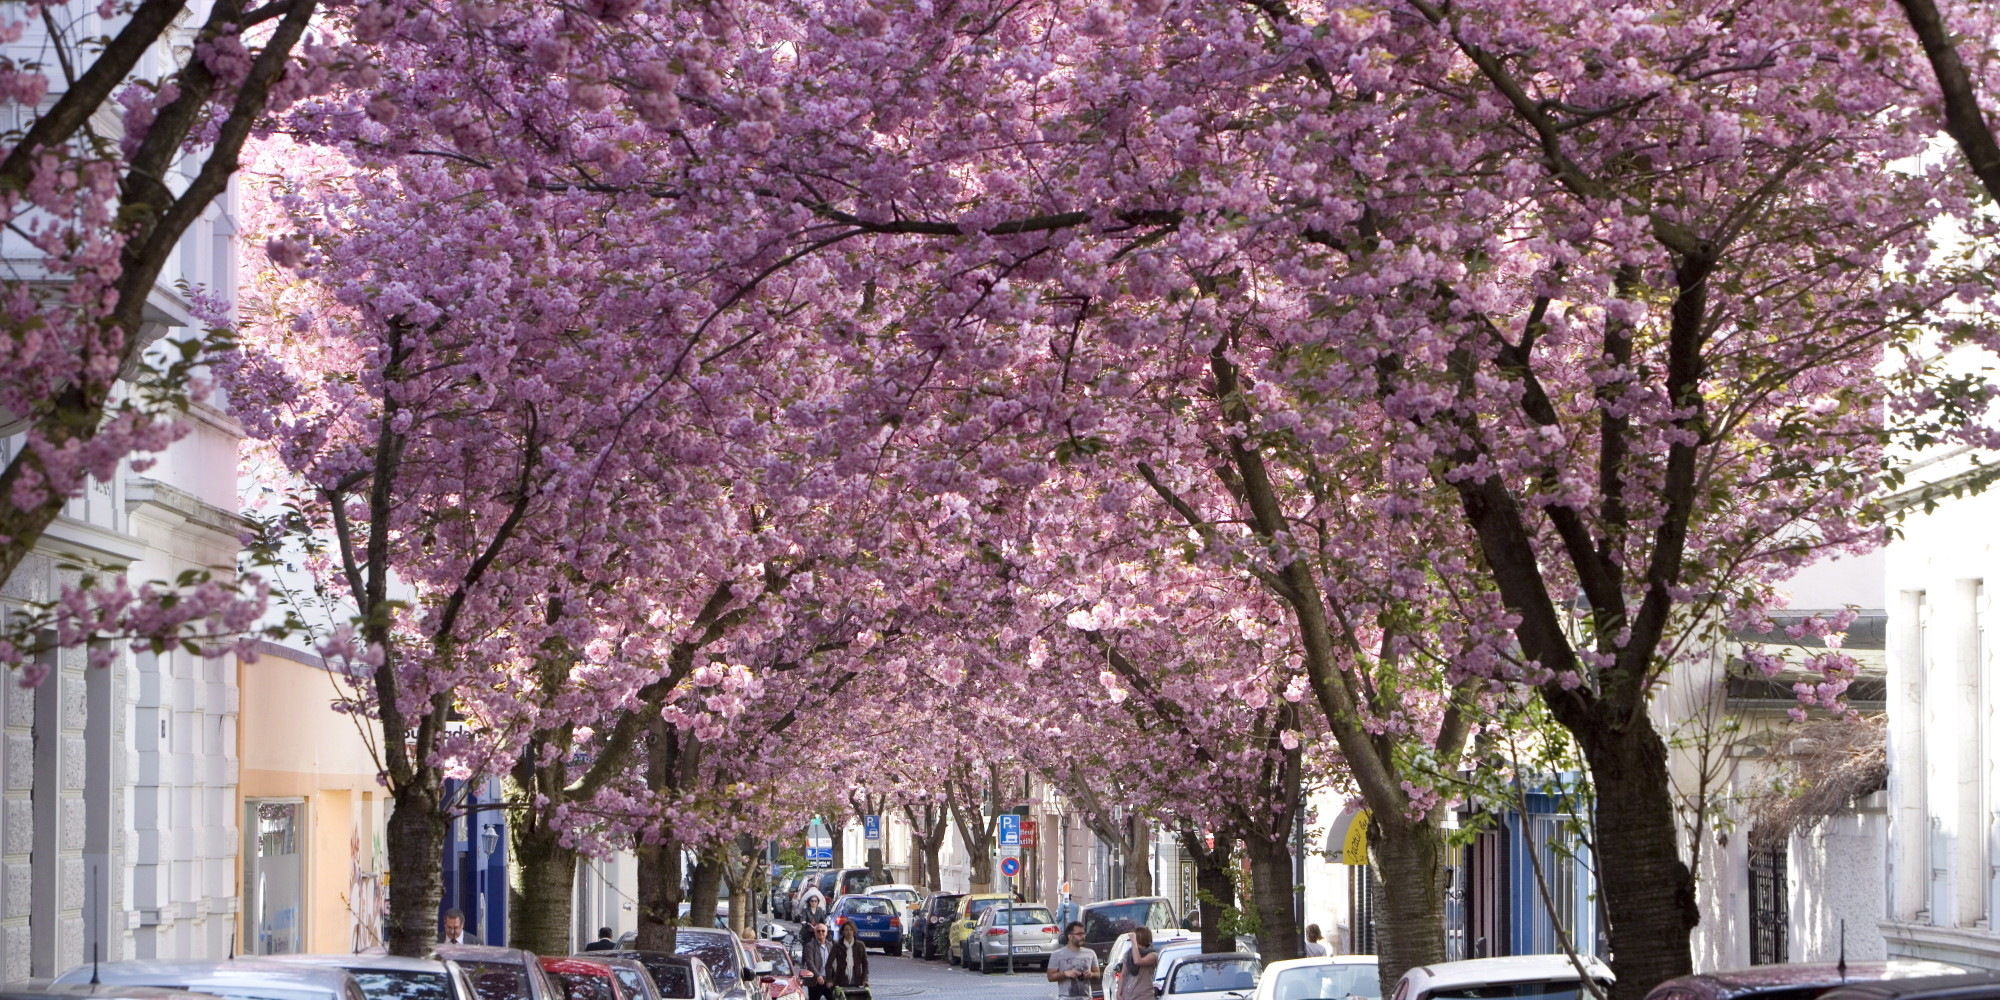 GERMANY, BONN - APRIL 02:Cherry blossom pictured in the old city of Bonn on April 02, 2014 in Bonn, Germany. (Photo by Ulrich Baumgarten via Getty Images)